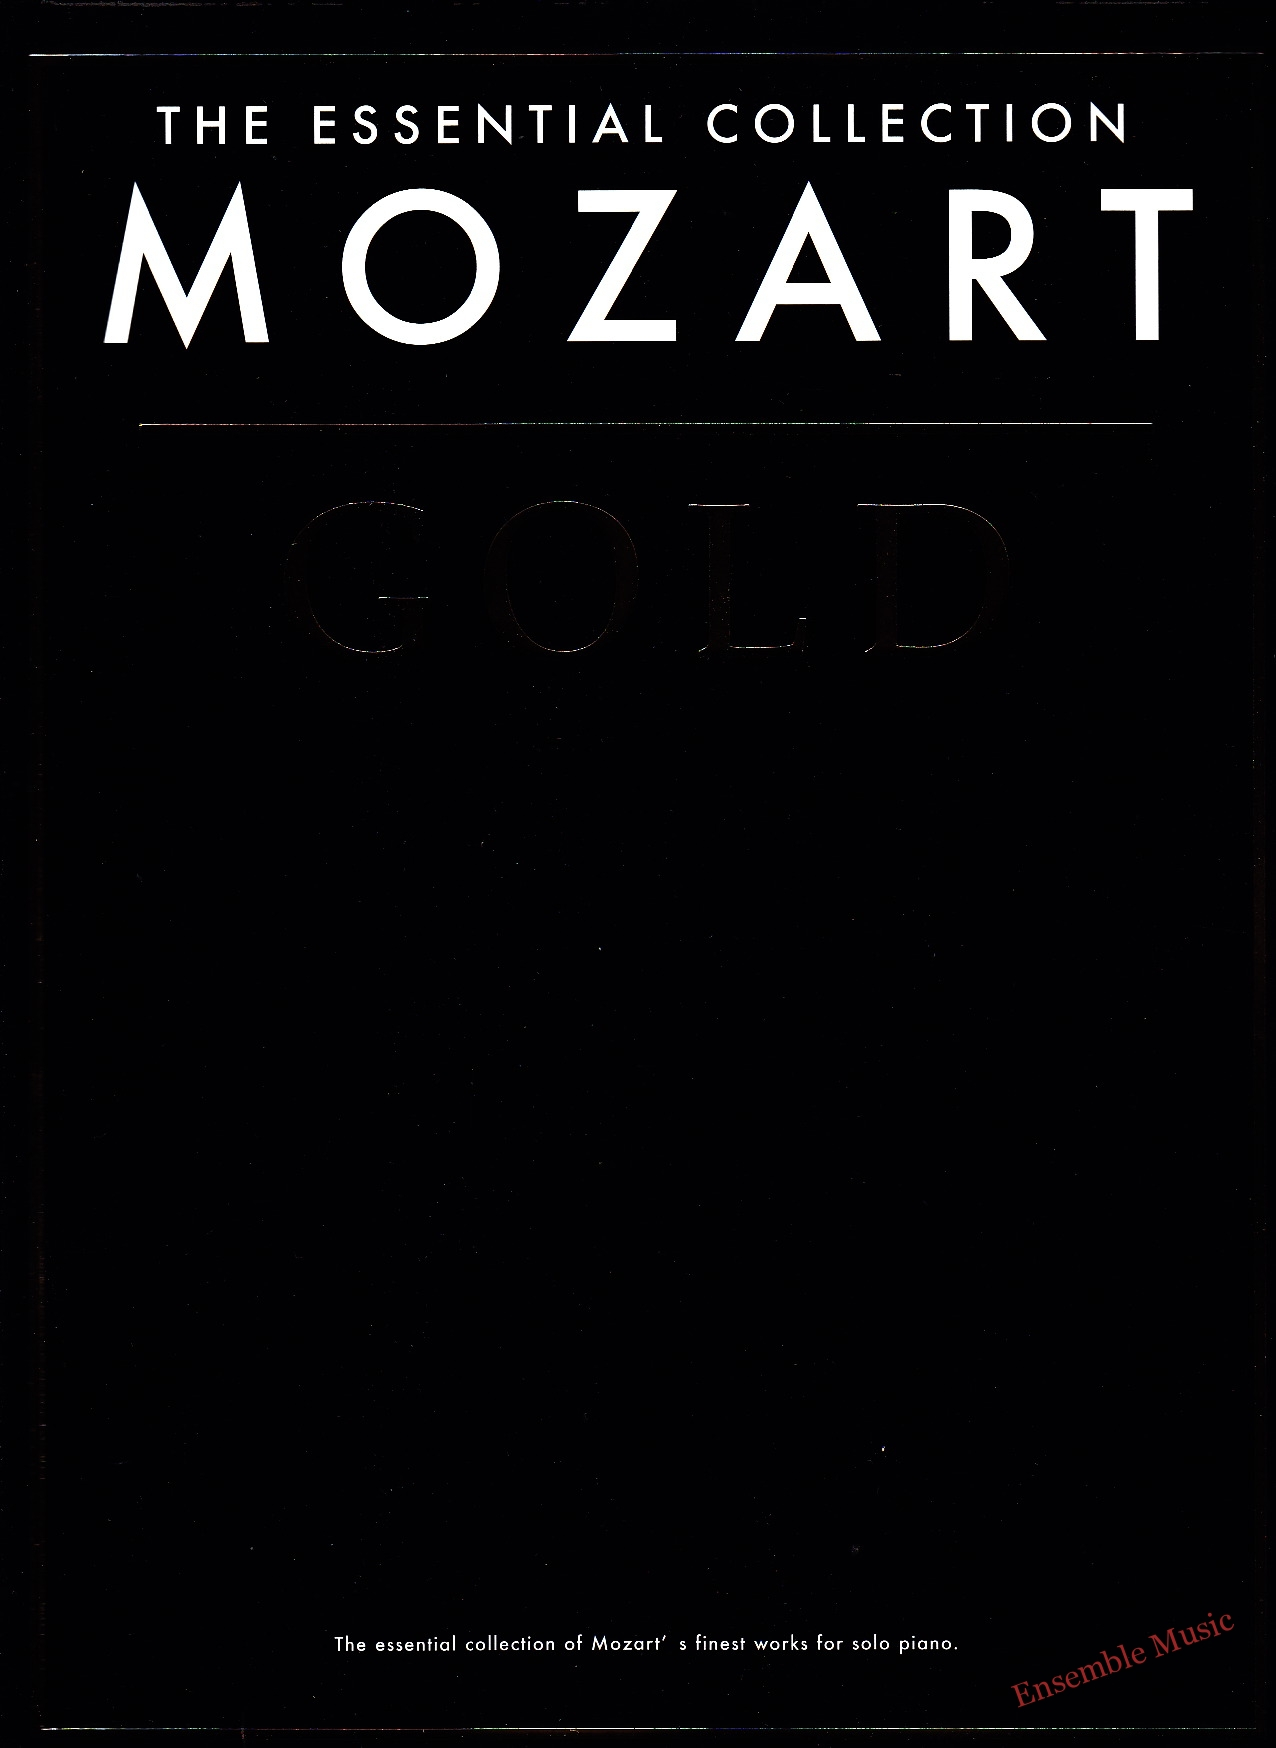 The Essential Collection Mozart Gold